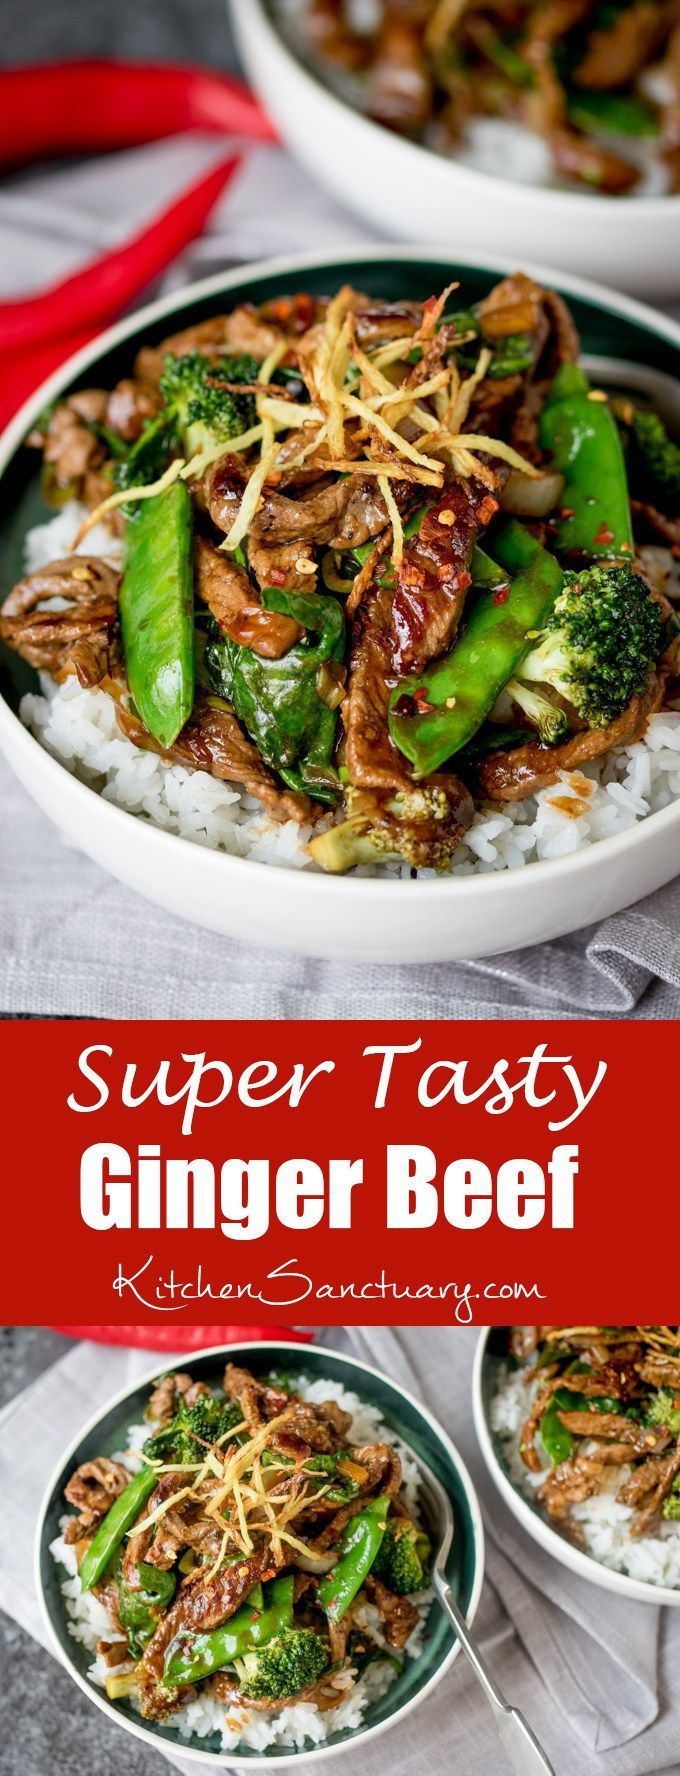 5955 best top uk food blog recipes images on pinterest cooking spicy ginger beef stir fry tender beef sirloin with crispy ginger green veg and forumfinder Gallery